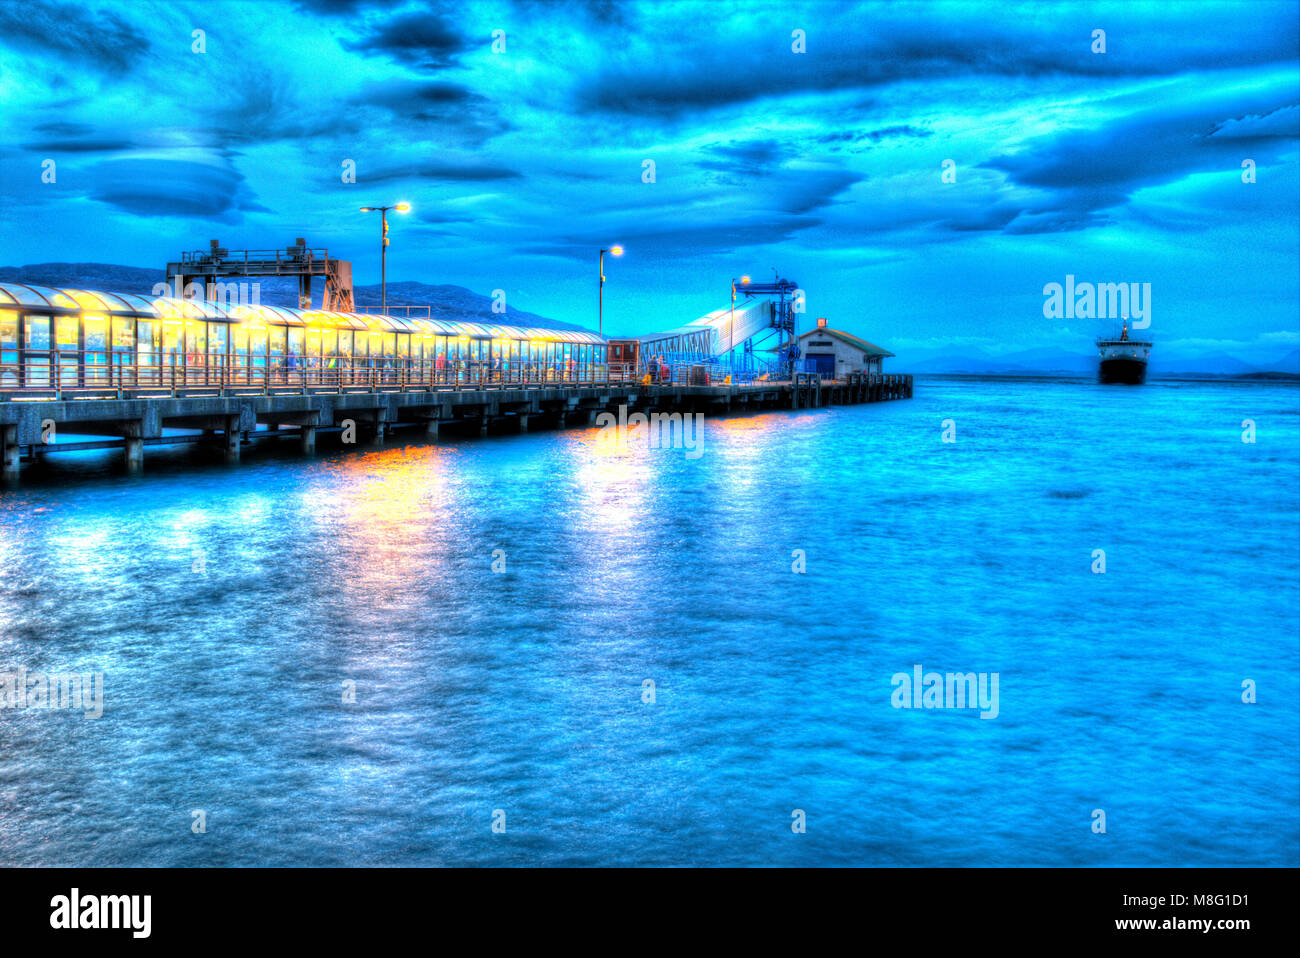 Isle of Mull, Scotland. Artistic dusk of the Oban to Craignure Cal Mac ferry arriving at Craignure Harbour. - Stock Image